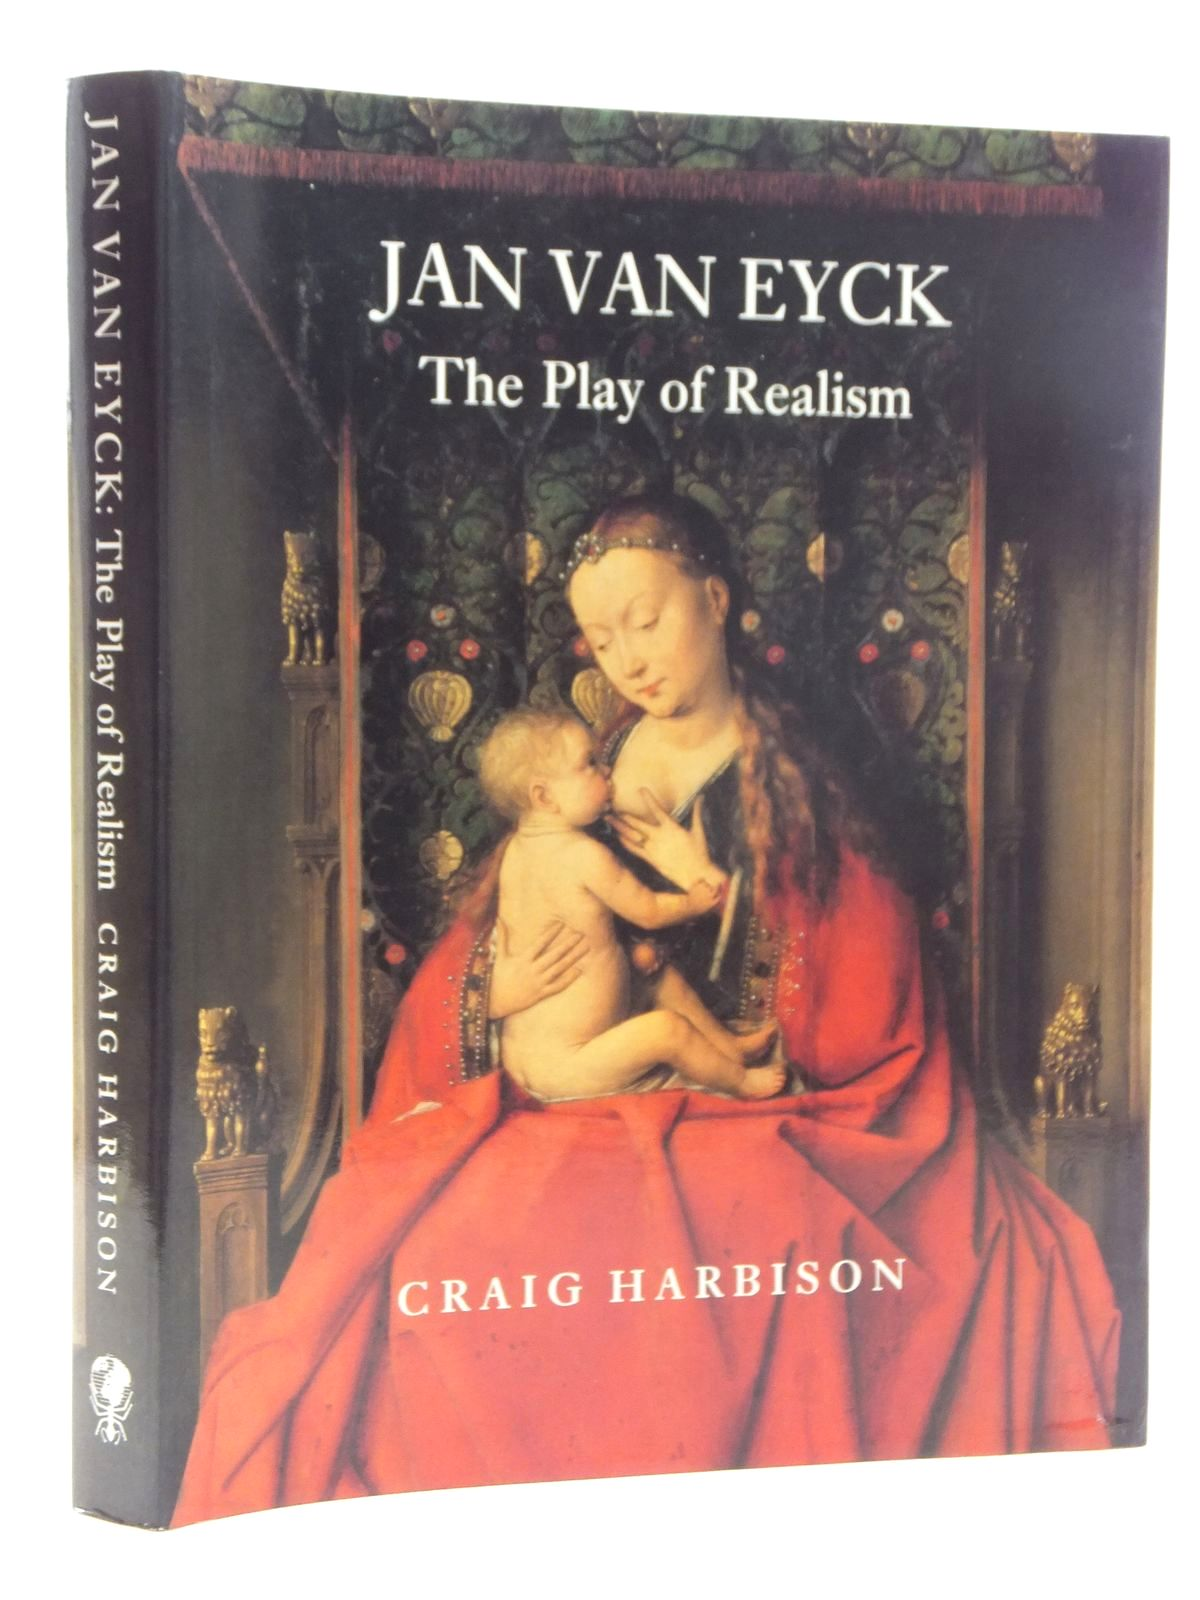 Photo of JAN VAN EYCK: THE PLAY OF REALISM written by Harbison, Craig illustrated by Van Eyck, Jan published by Reaktion Books (STOCK CODE: 1815123)  for sale by Stella & Rose's Books